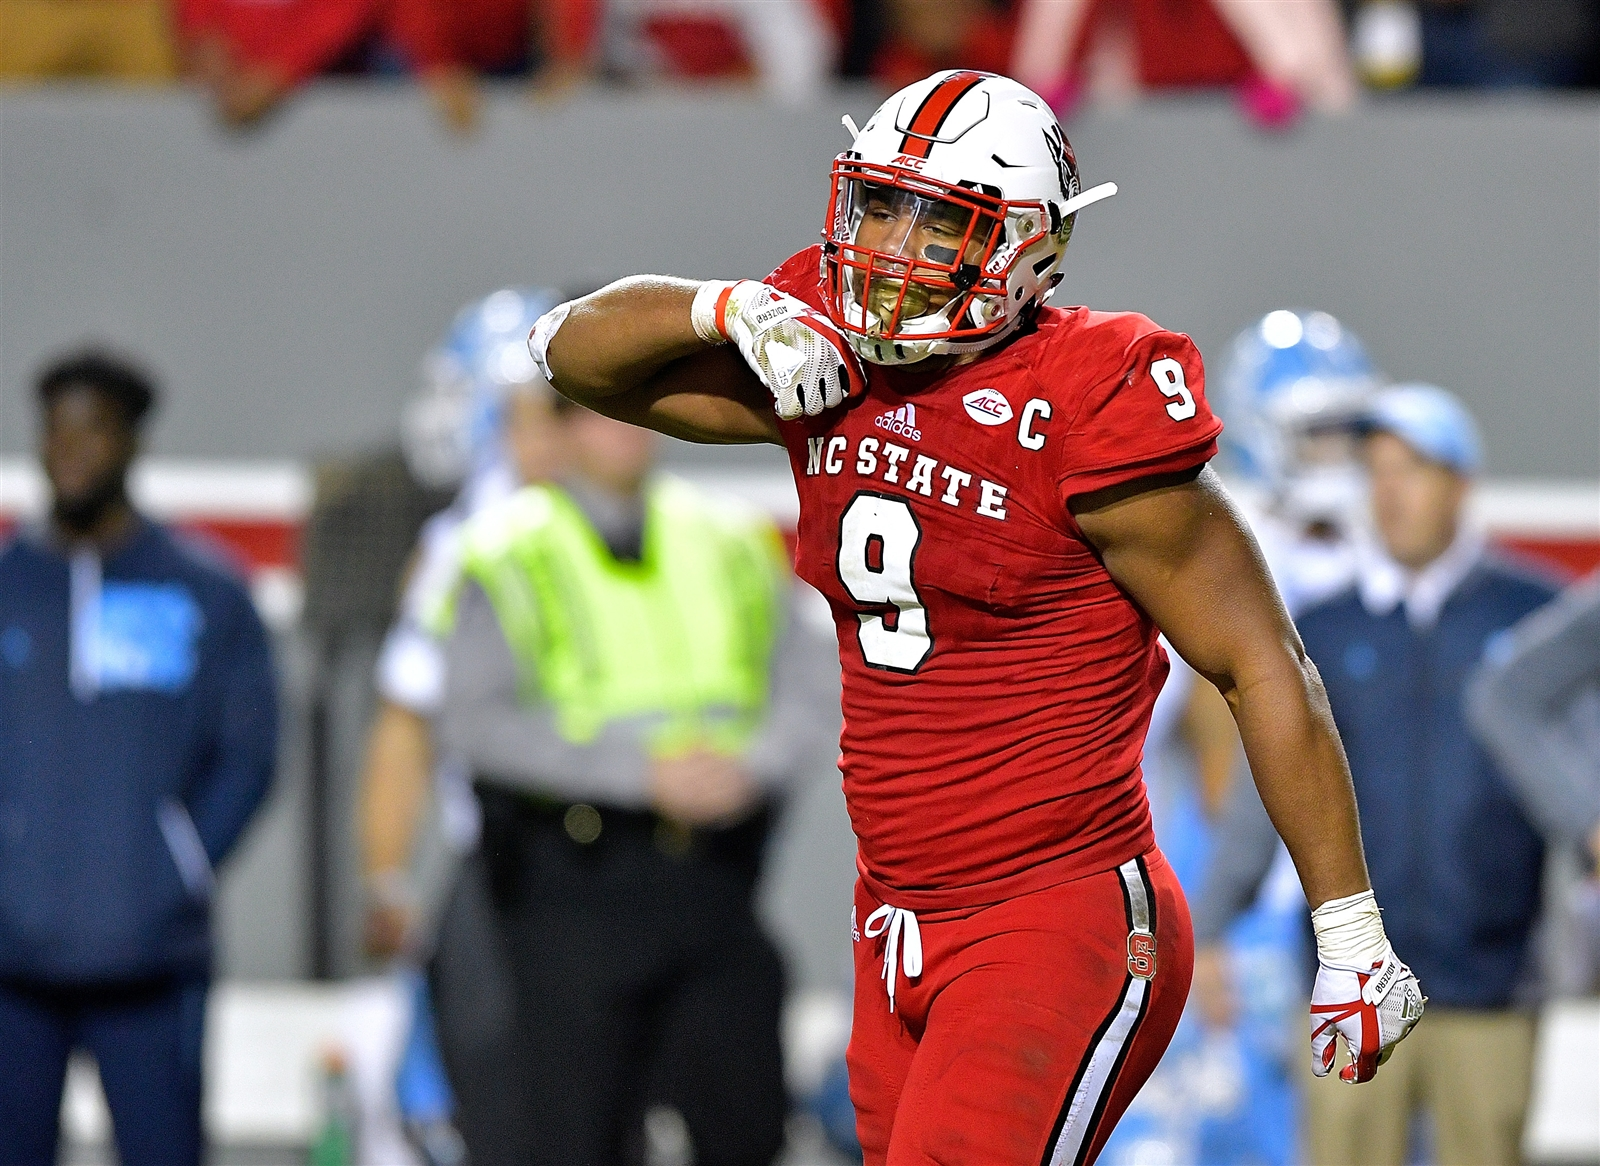 2. New York Giants. Bradley Chubb, DE, North Carolina State. Dave Gettleman's fondness for drafting big men has been mentioned frequently, and the addition of Chubb would give New York the best pass rusher in the draft. It would also greatly help the Billsu2019 quarterback cause. More on that in a bit.